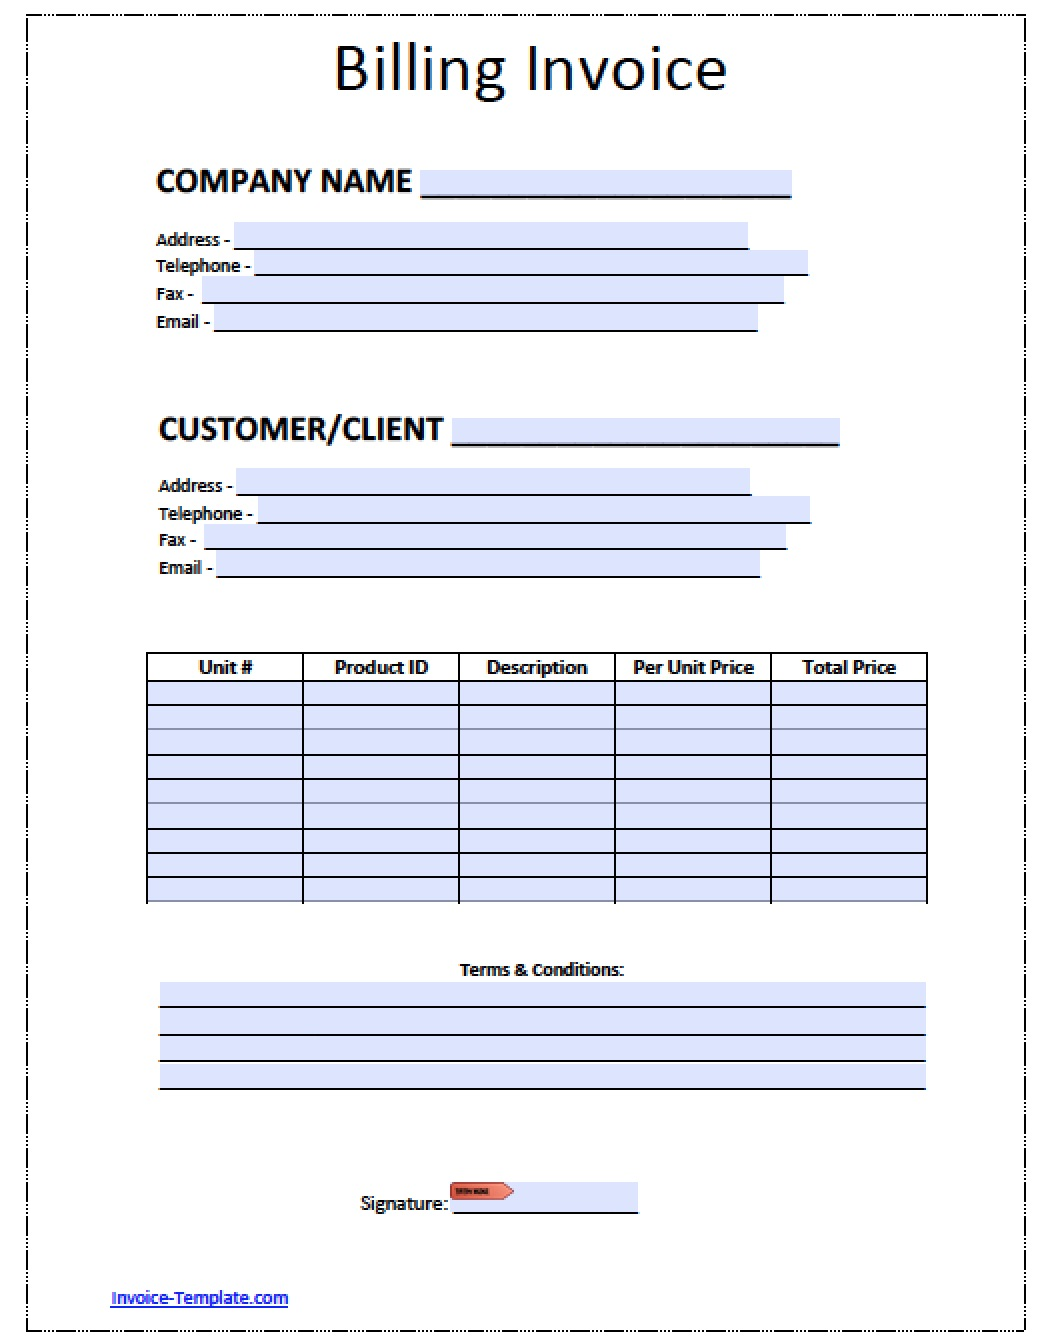 Free Billing Invoice Template Excel PDF Word Doc - Templates for billing invoice